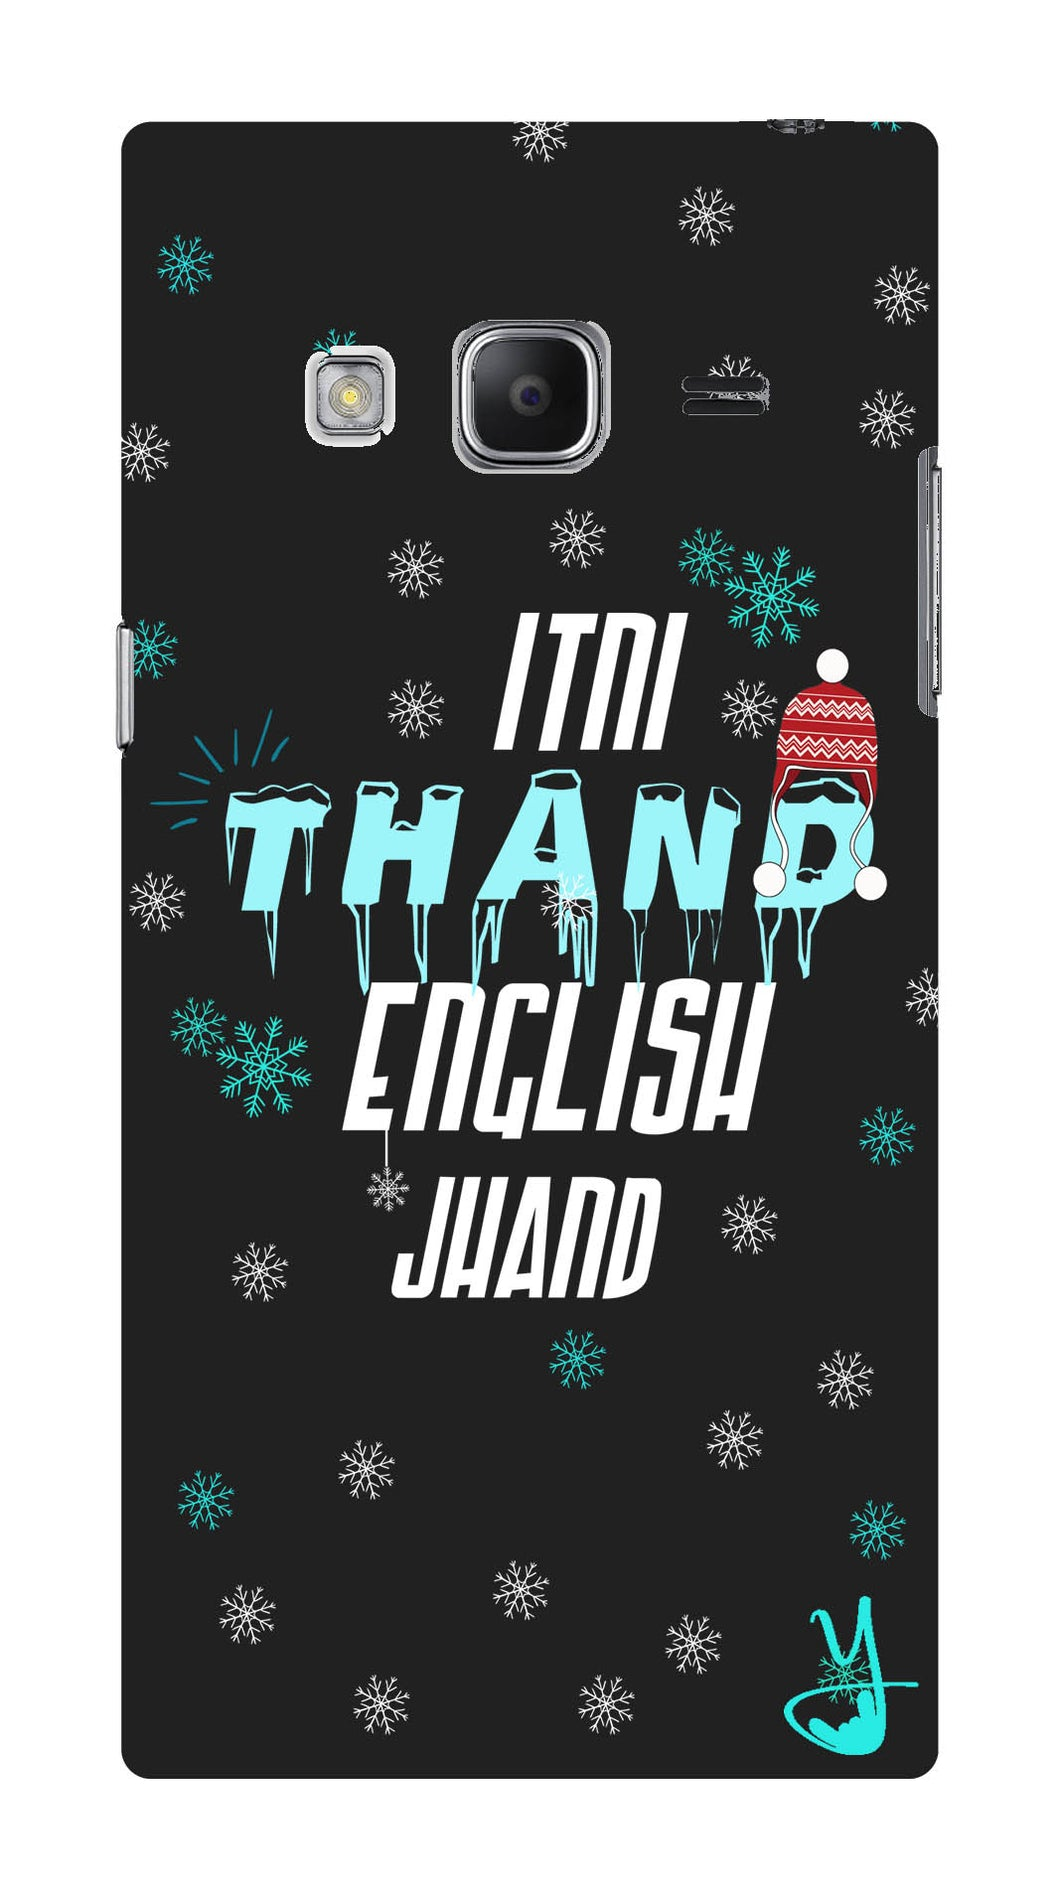 Itni Thand edition for Samsung Galaxy Z3